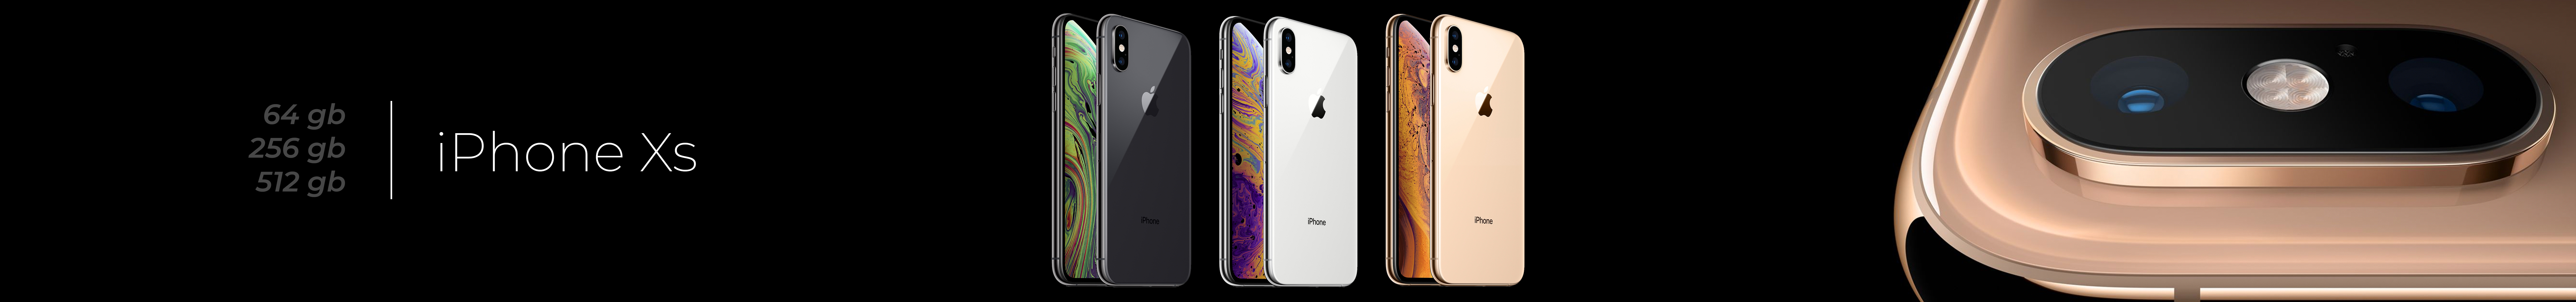 iPhone Xs Open Box Mobile